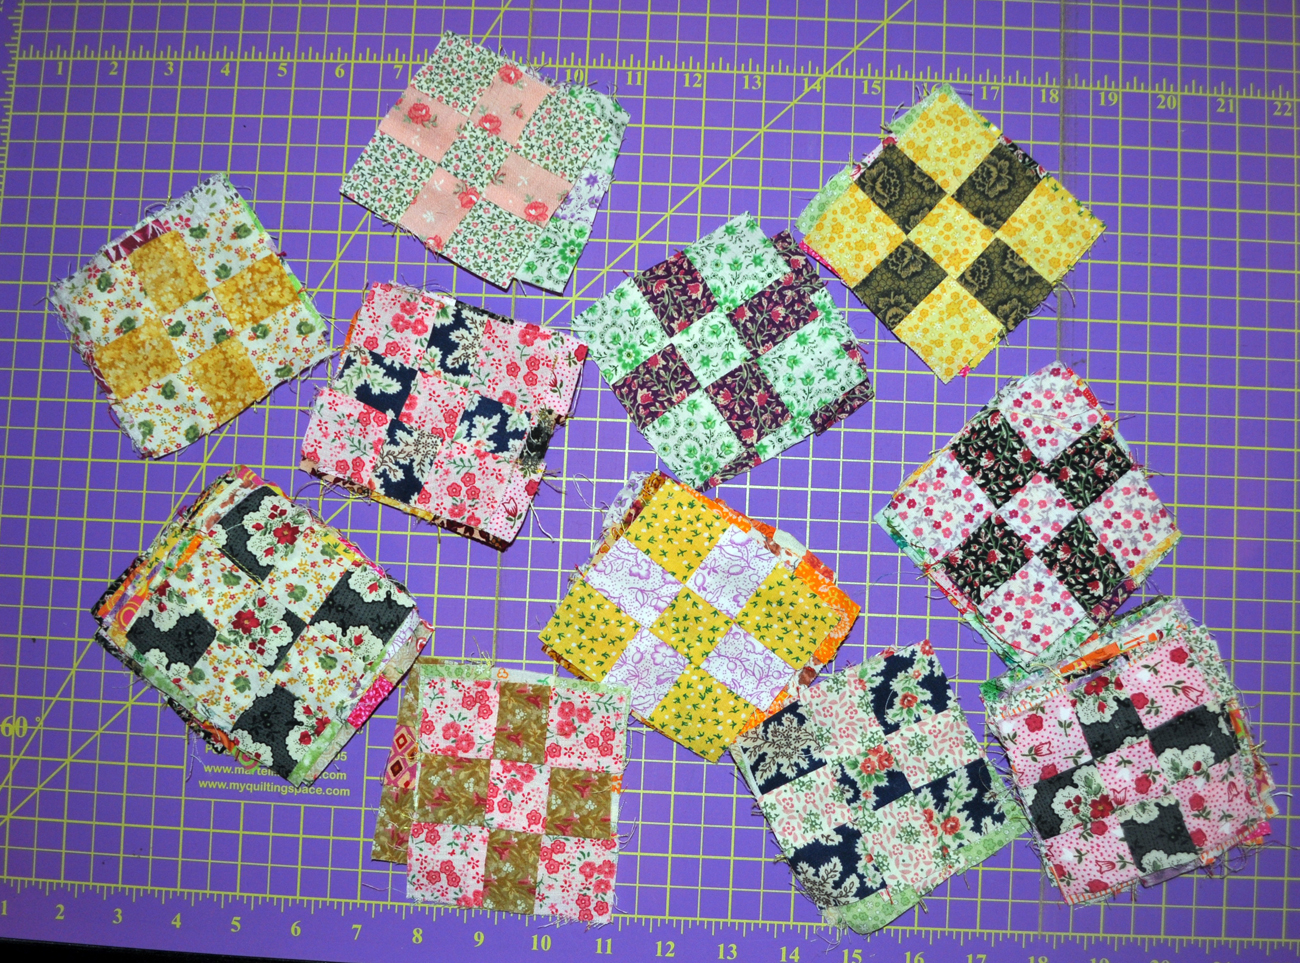 Blockbase pieced quilt patterns by the electric quilt co.